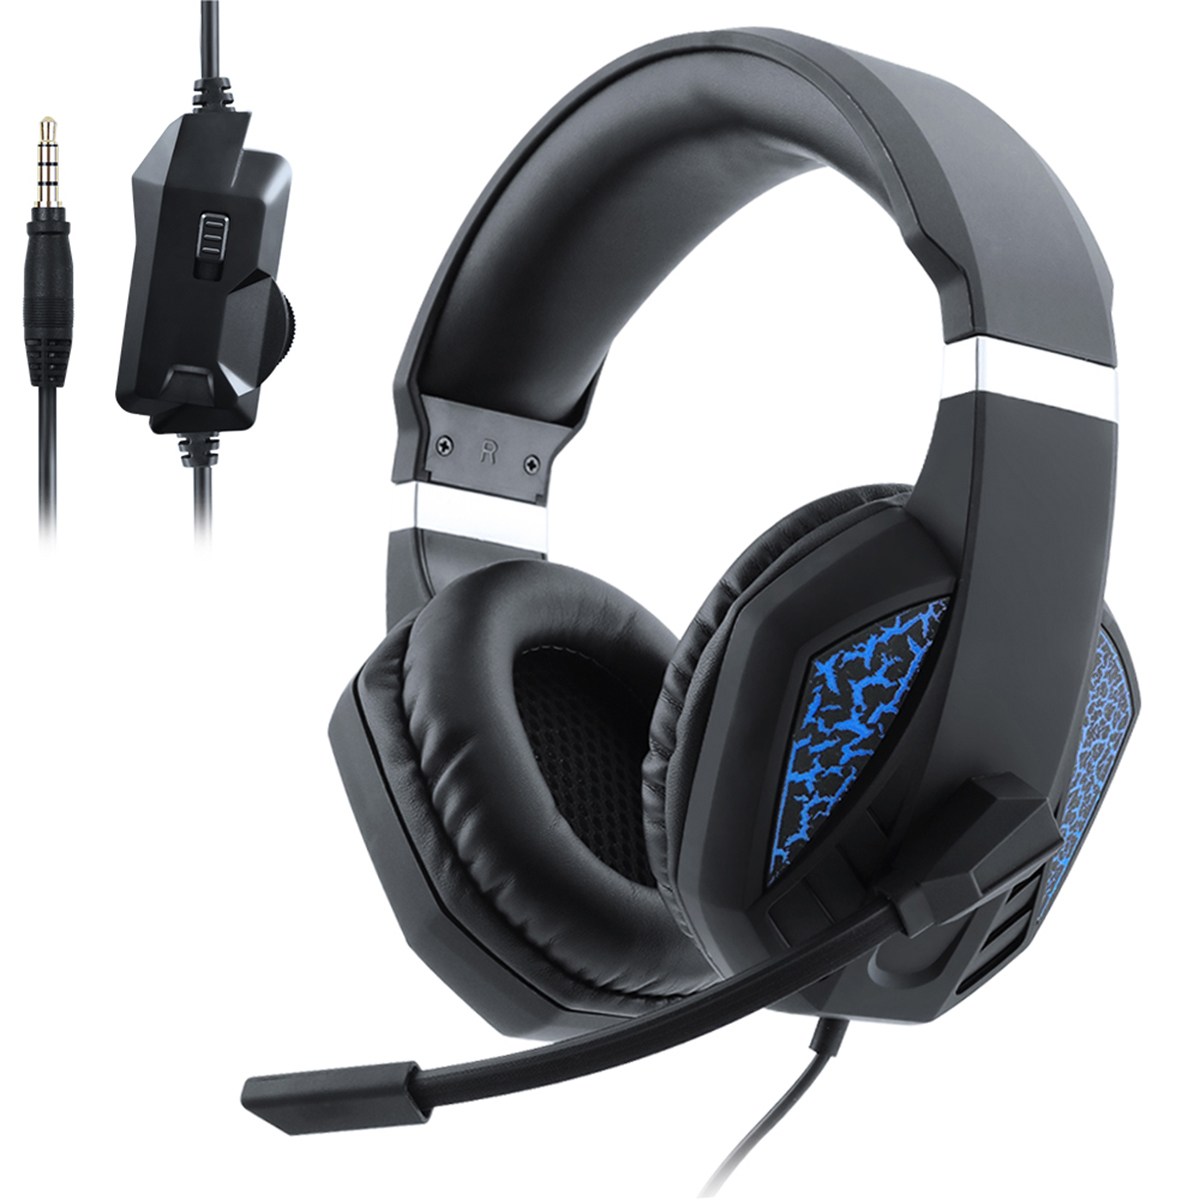 3.5mm USB Wired Gaming Headset Stereo Surround On Ear Headphone With Mic Professional Computer​ Headphone For PS4 Xbox One PC image